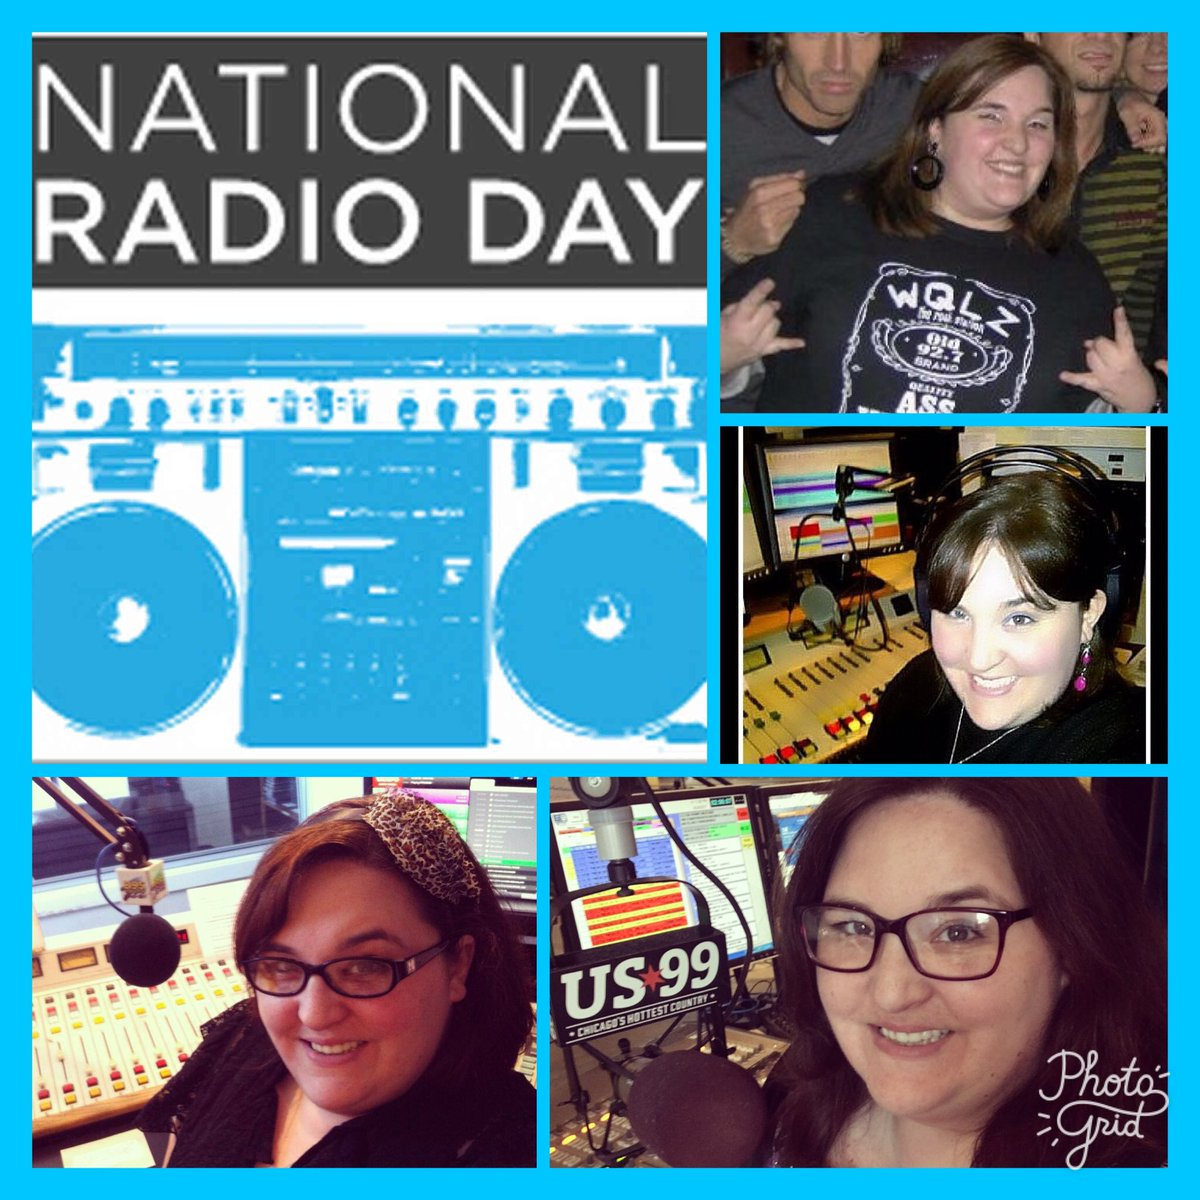 Happy #NationalRadioDay 🙌🏻 Grateful to be living my dream.. literally! #Radio #OnAir #radiodj https://t.co/BGjPnVSFPg